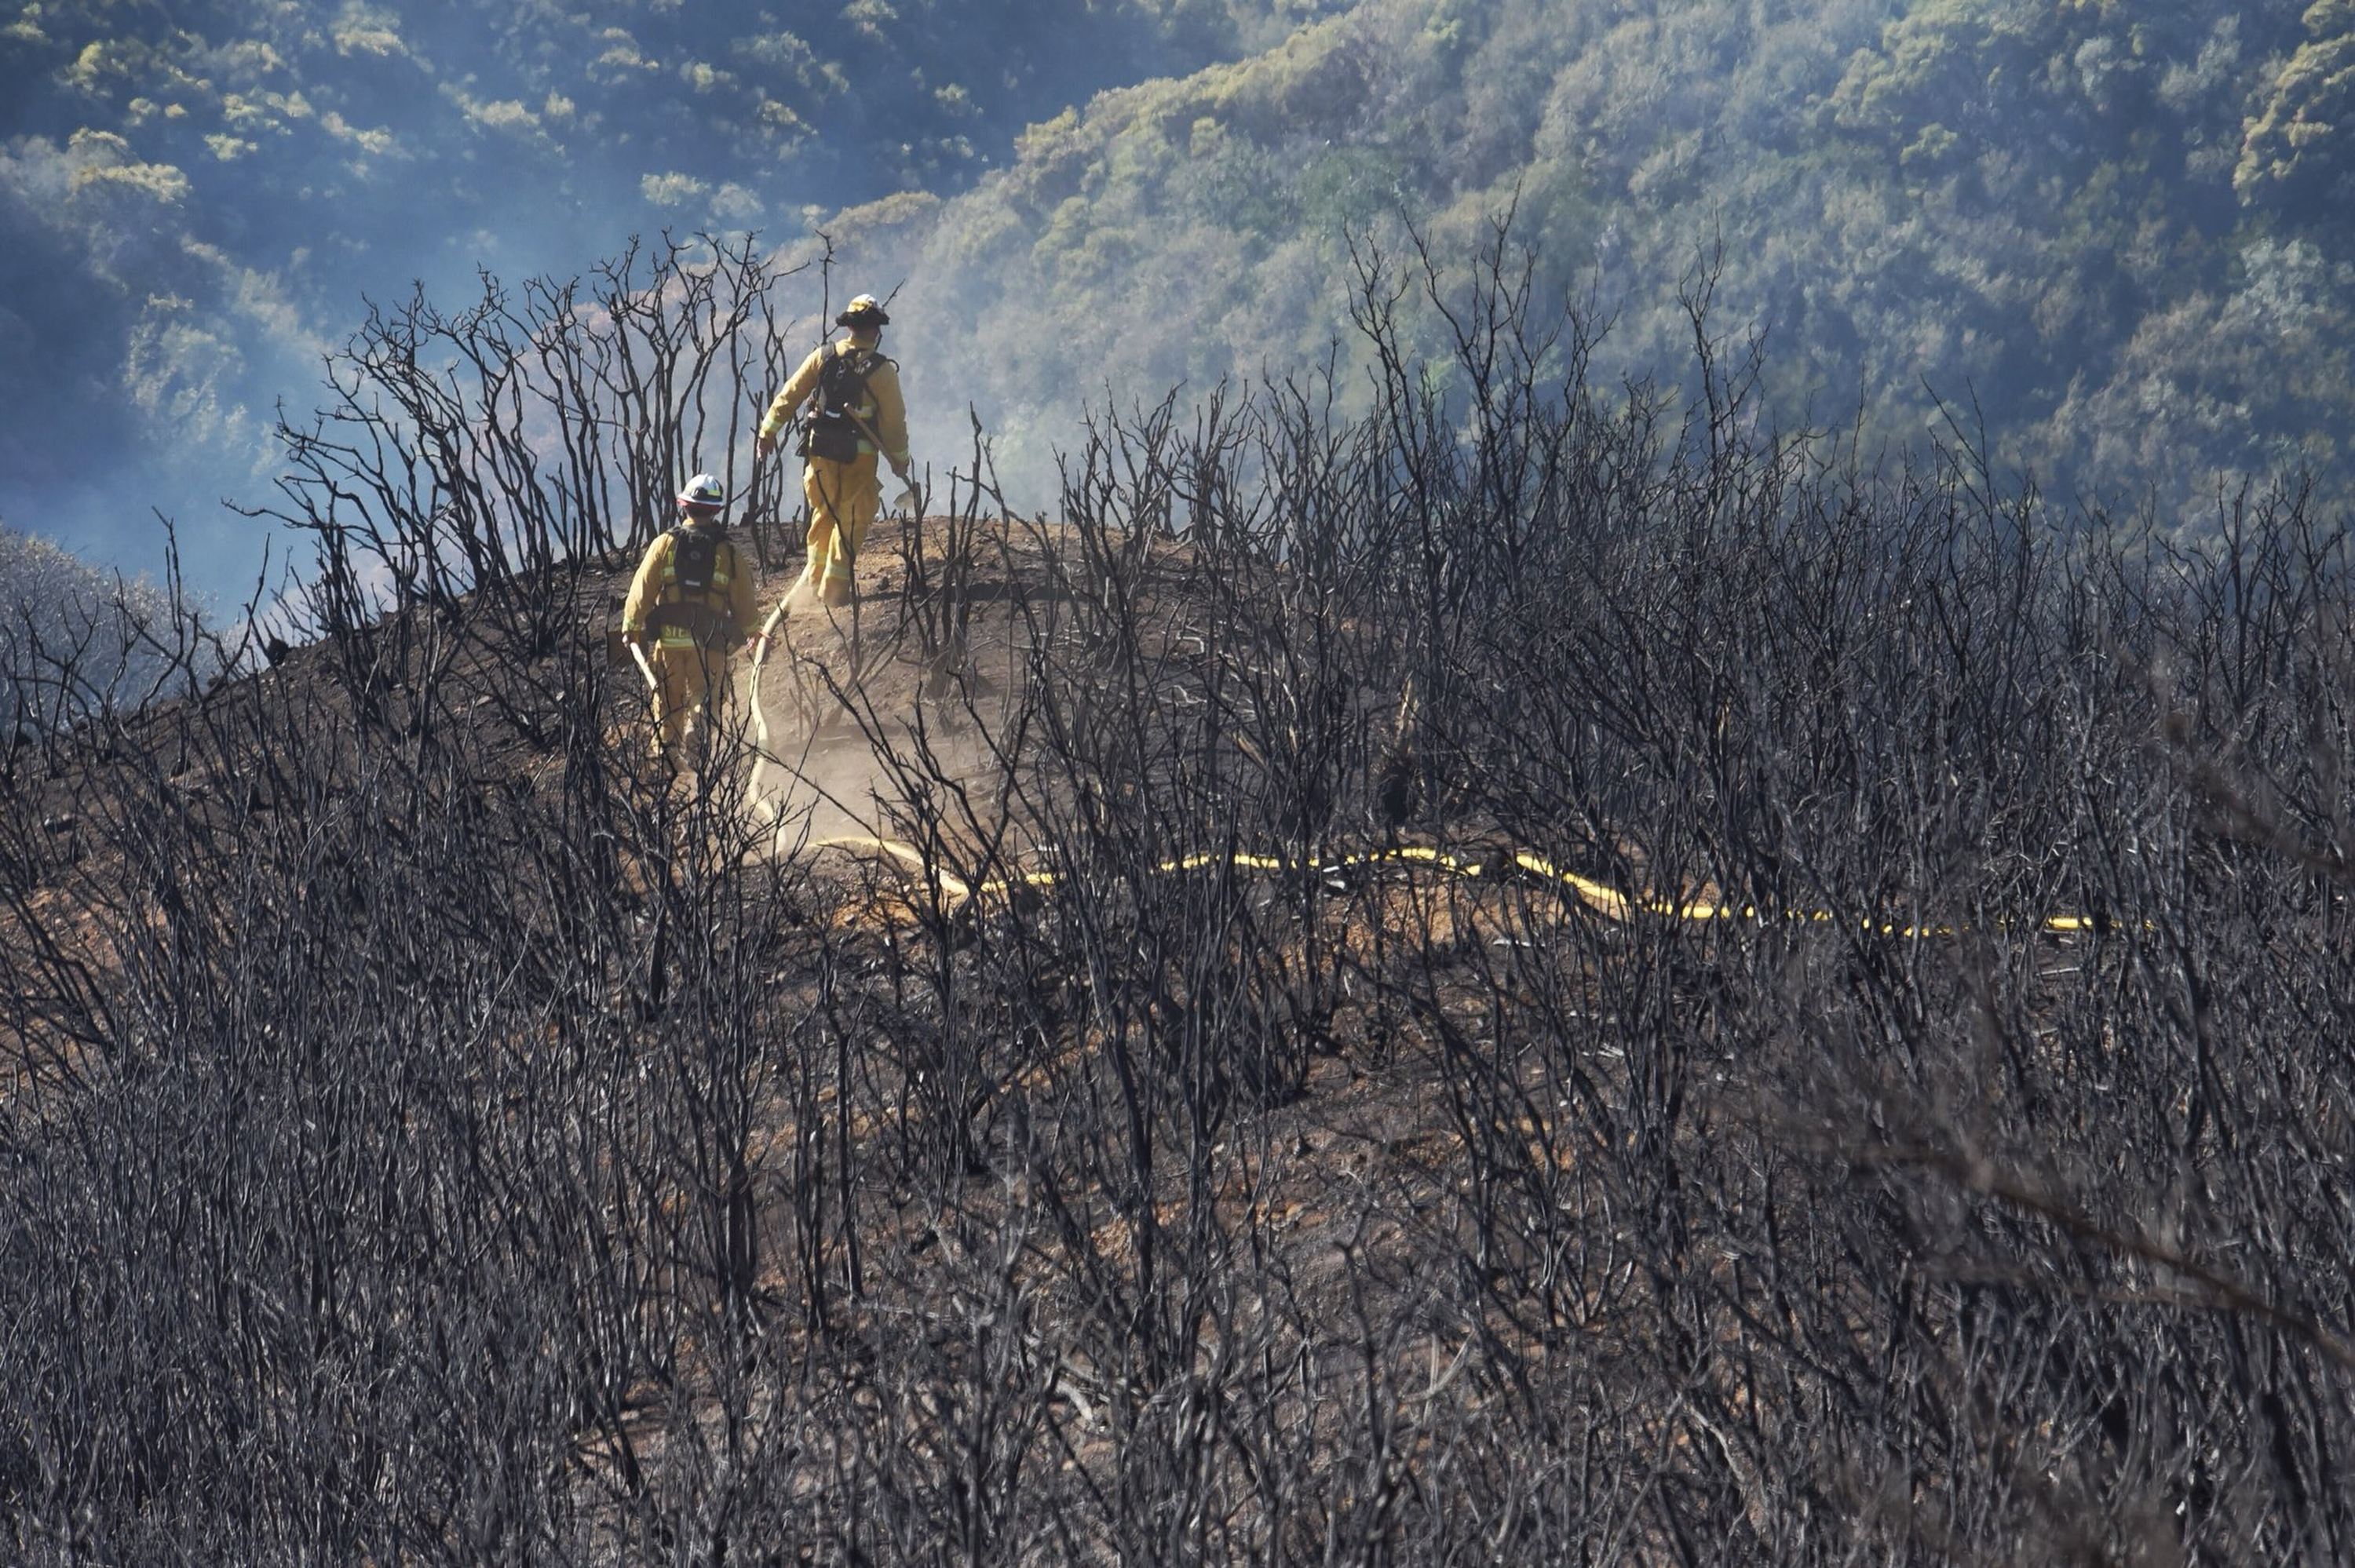 In this photo provided by the Santa Barbara County Fire Department, firefighters follow a hose line while walking rugged and scorched terrain below E. Camino Cielo near Gibraltar Road in Santa Barbara, Calif., Tuesday, Dec. 19, 2017. Officials estimate that the fire will grow to become the biggest in California history before full containment, expected by Jan. 7. (Mike Eliason/Santa Barbara County Fire Department via AP)